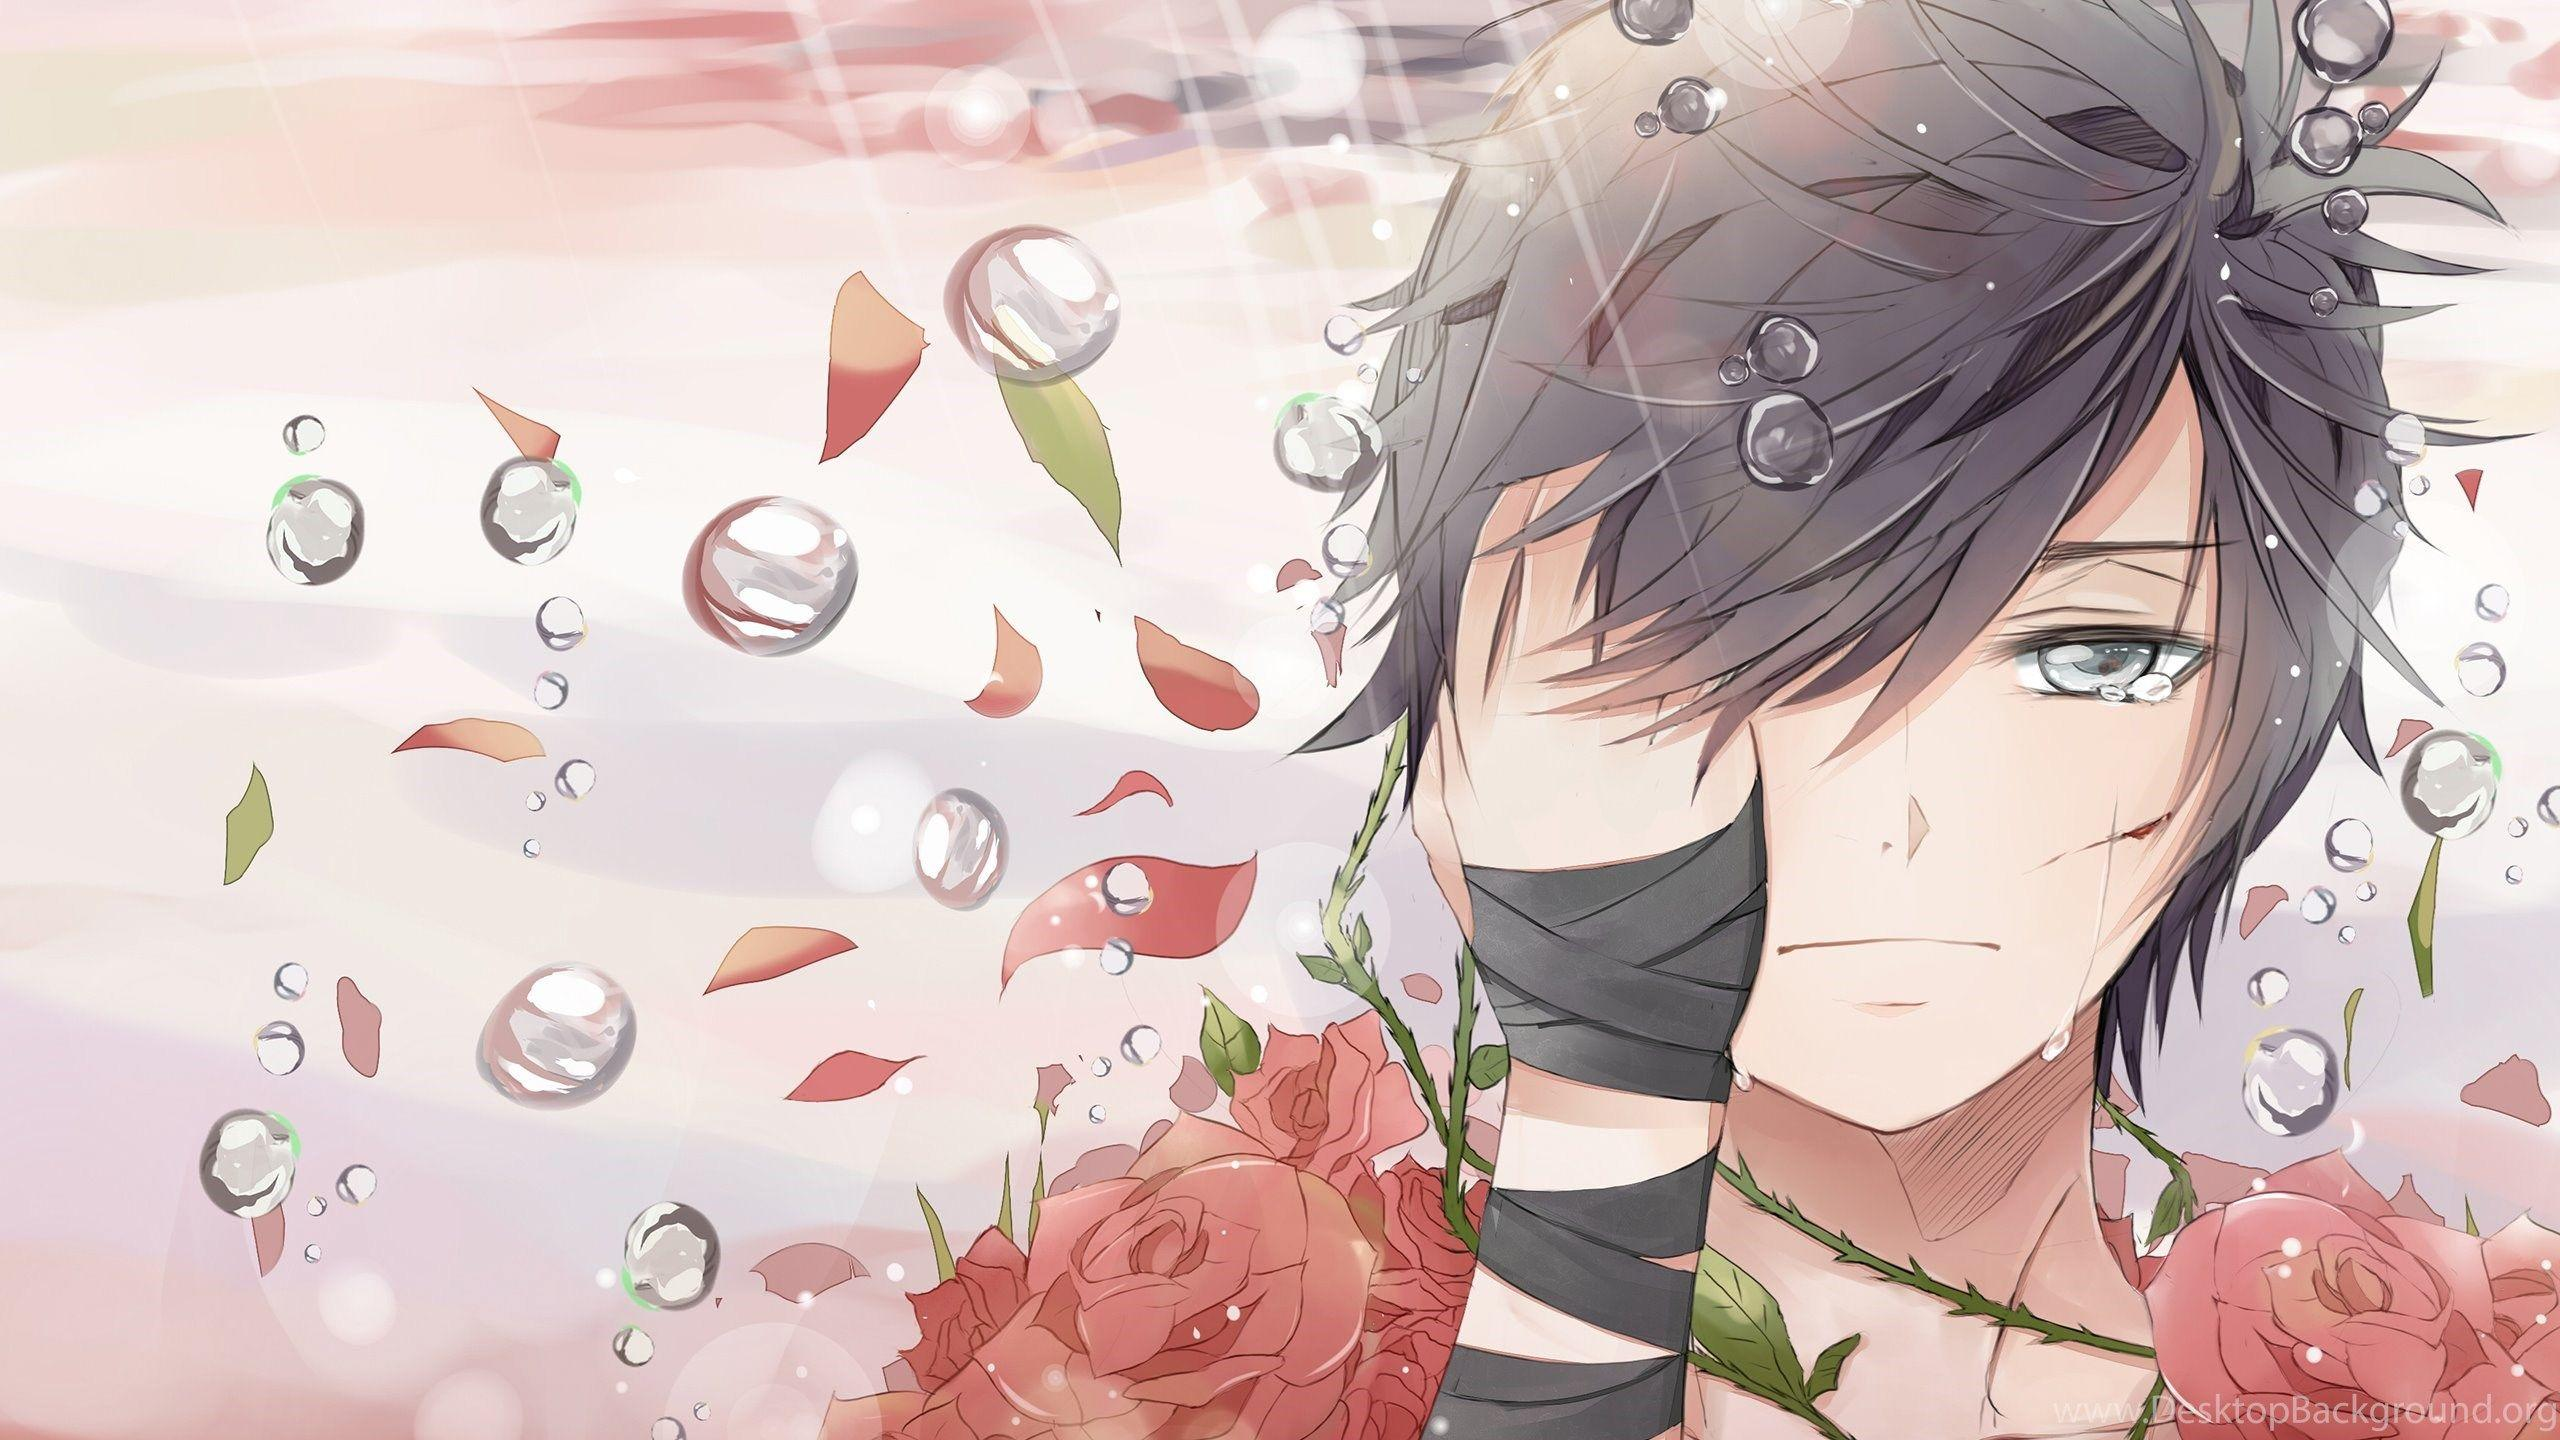 Sad Boy Covered In Roses Wallpapers Anime Wallpapers Desktop